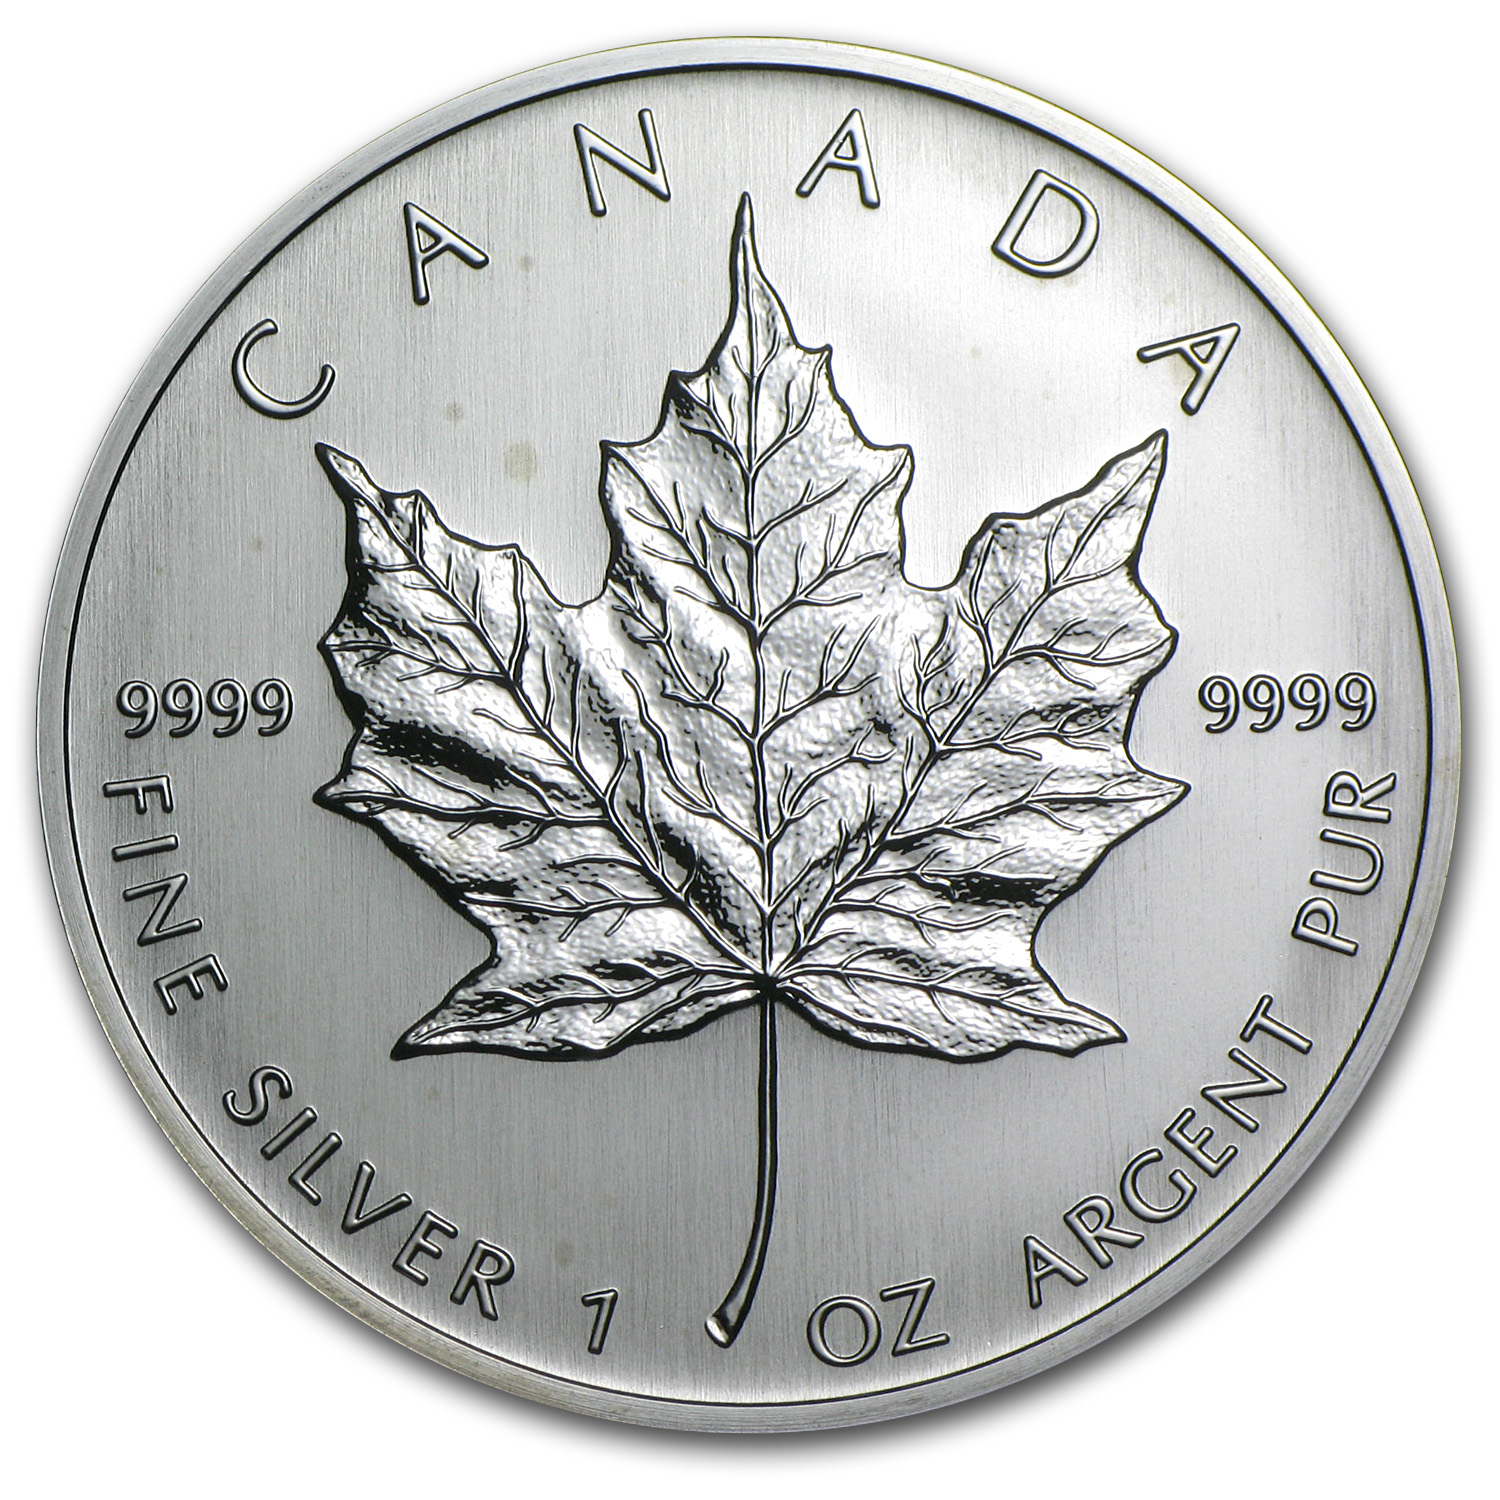 2004 Canada 1 oz Silver Maple Leaf BU